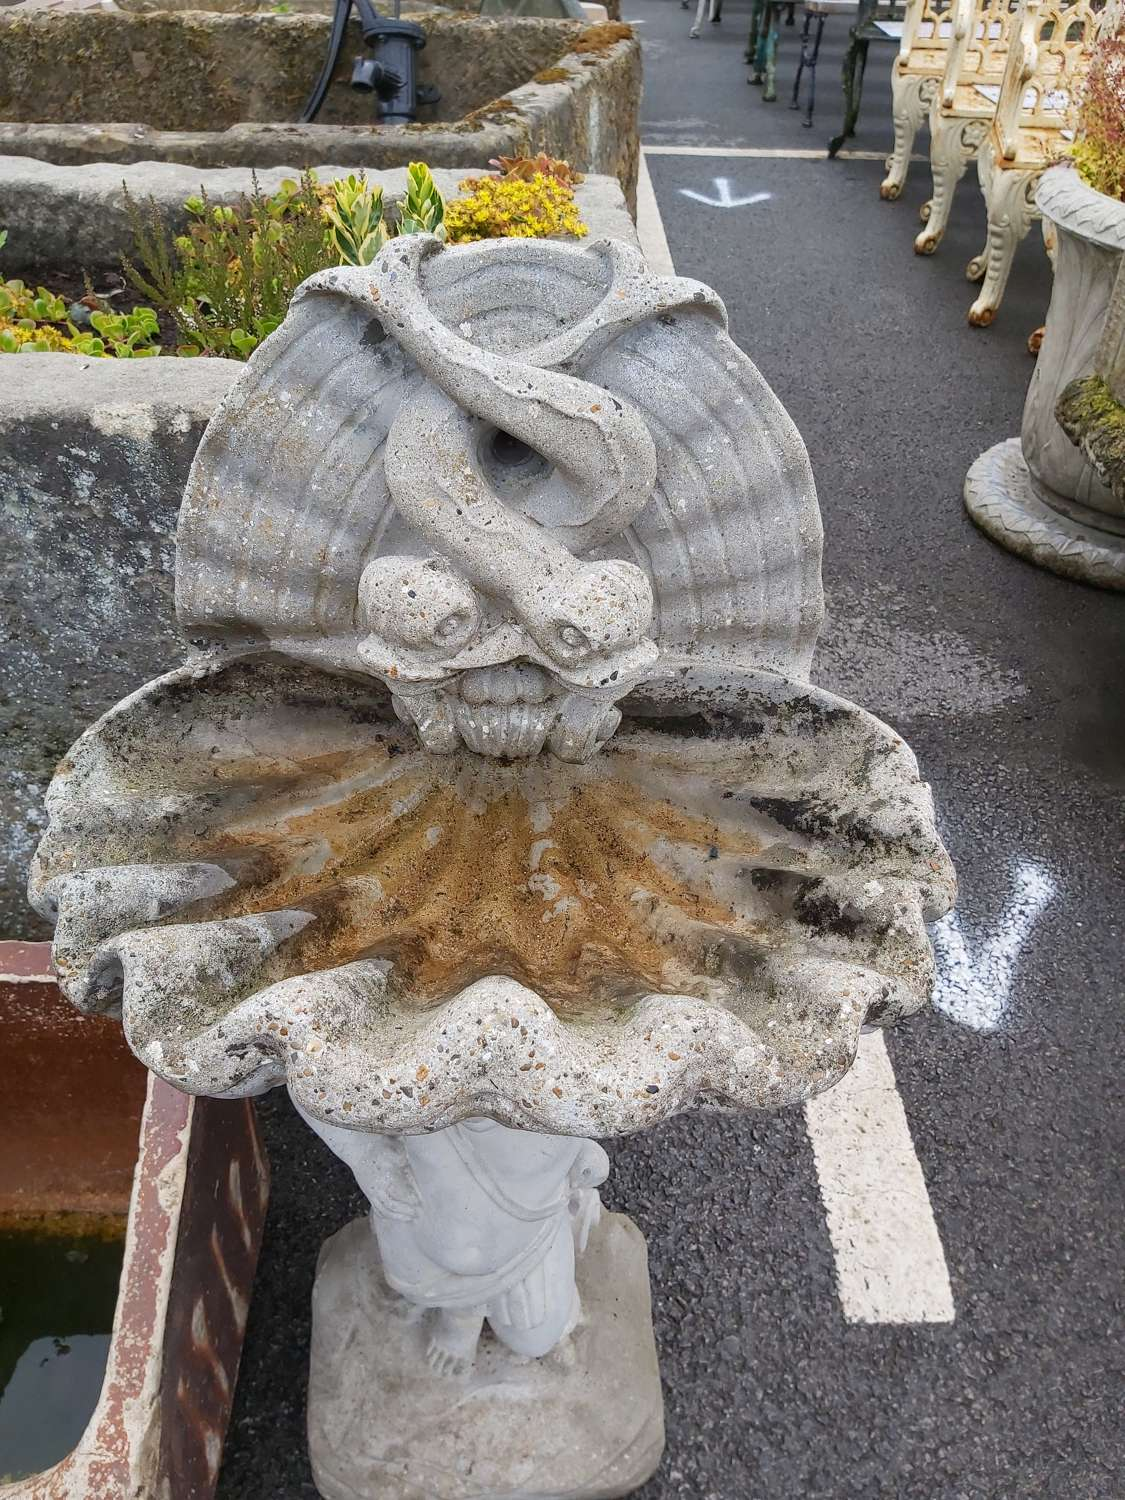 SHELL AND FISH BIRD BATH